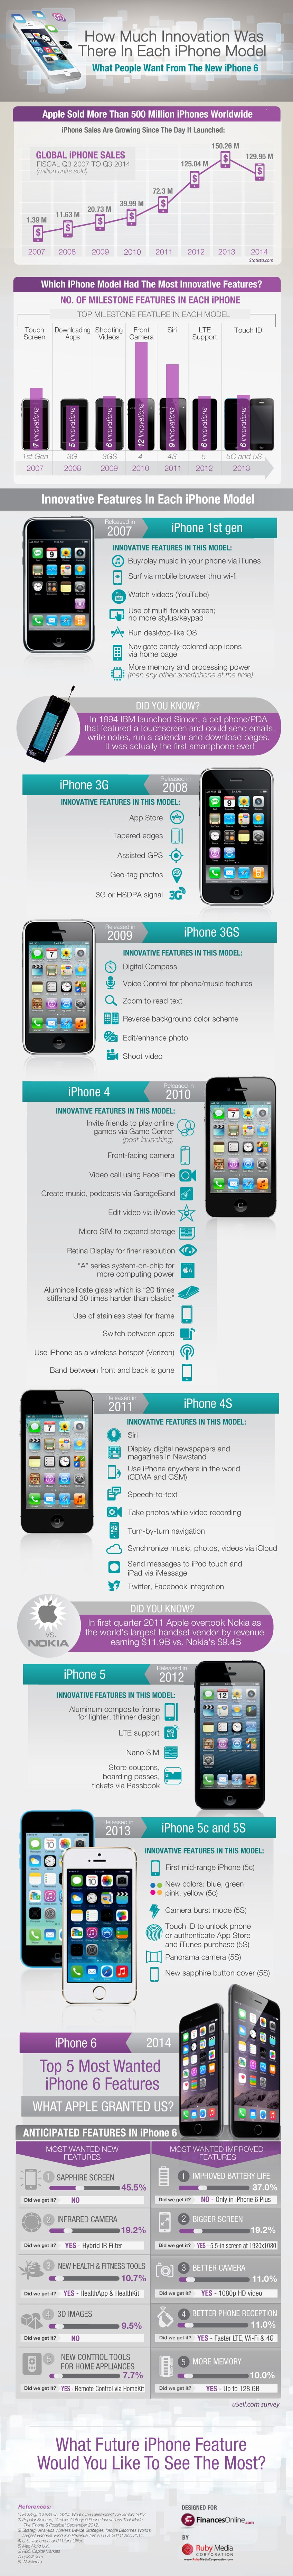 iPhone_infographic_Finale